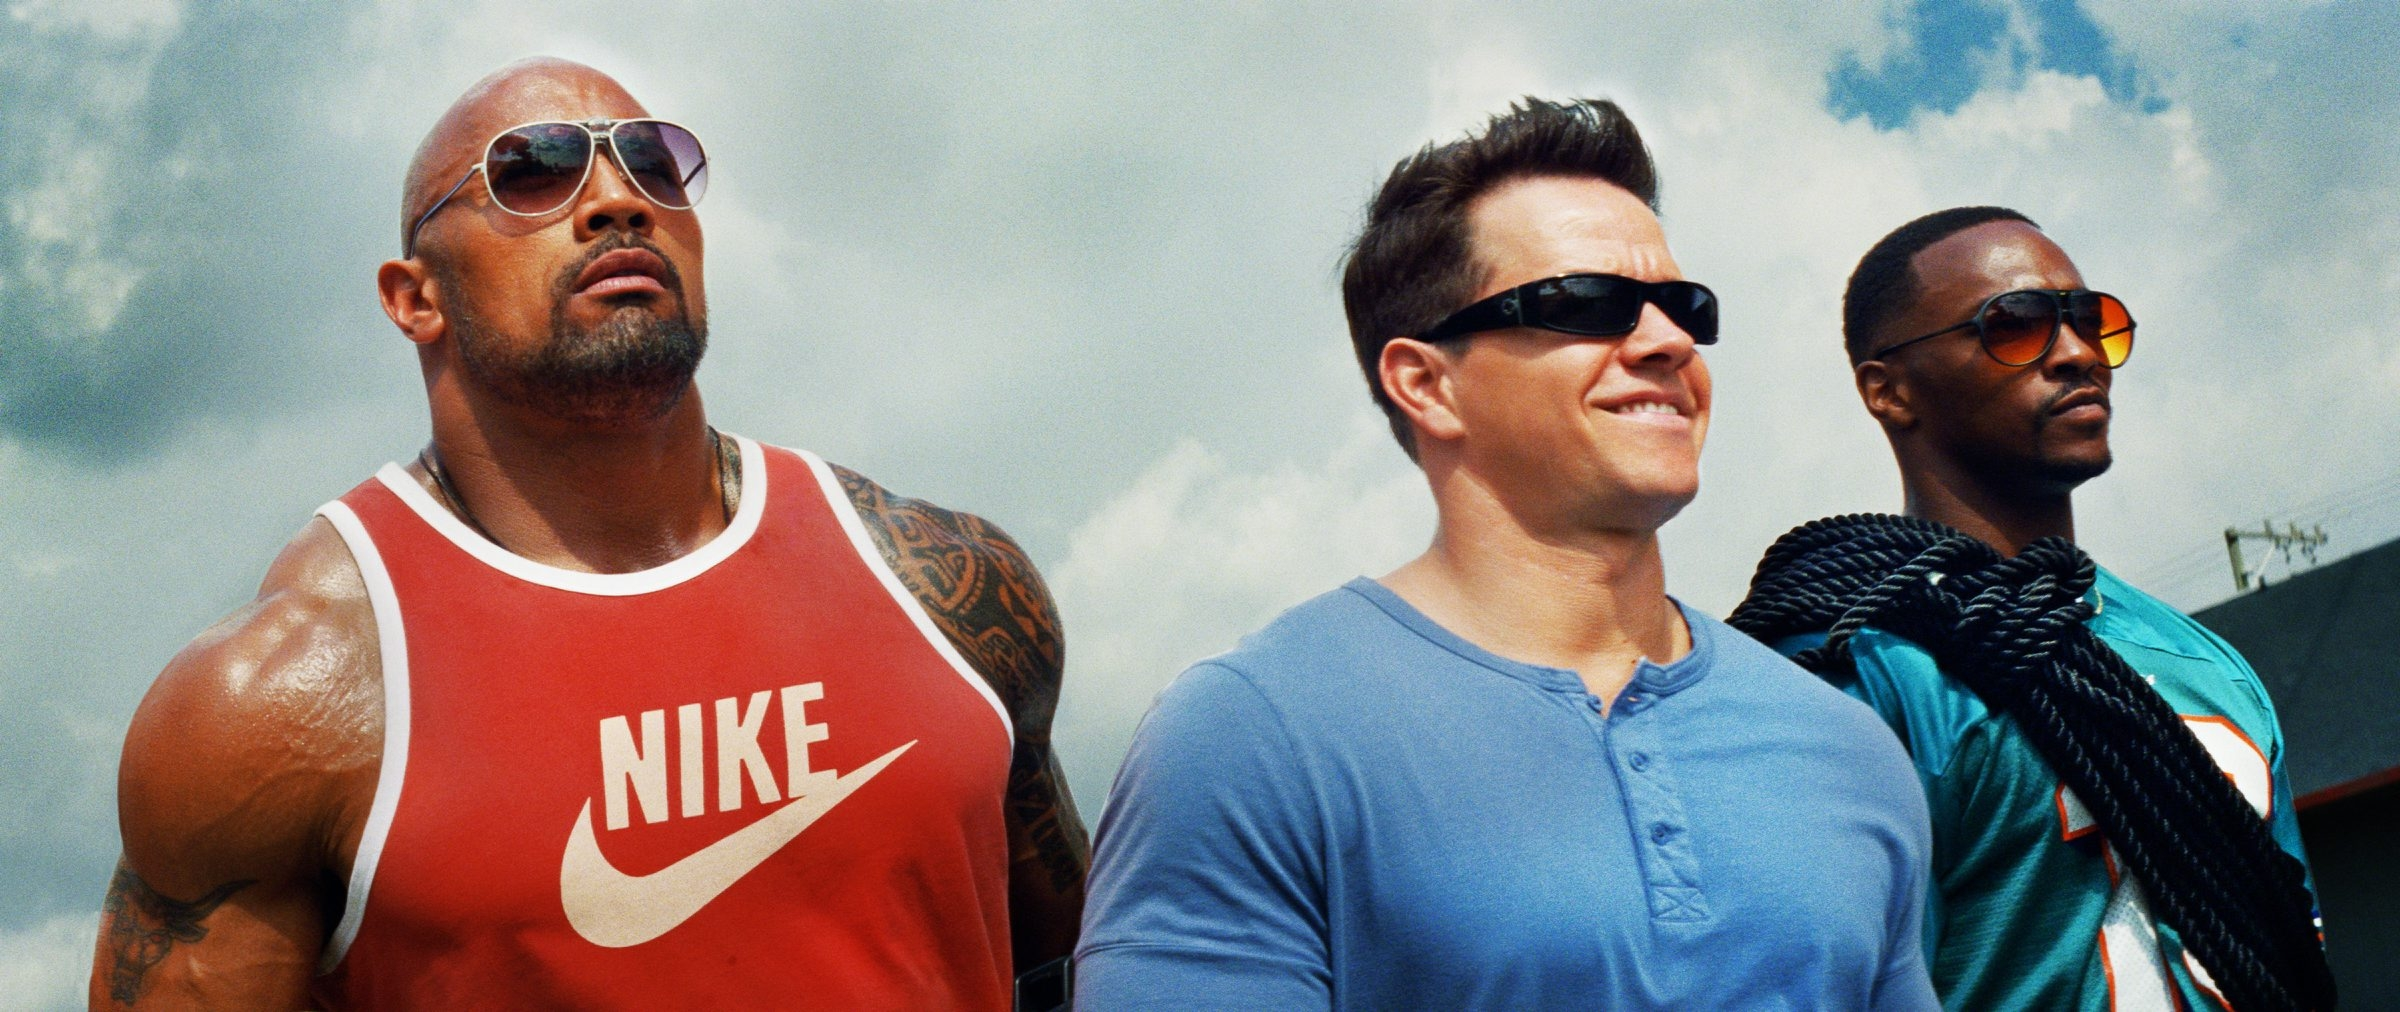 (Left to right) Dwayne Johnson as Paul Doyle, Mark Wahlberg as Daniel Lugo and Anthony Mackie as Adrian Doorbal in PAIN AND GAIN, directed by Michael Bay from Paramount Pictures.